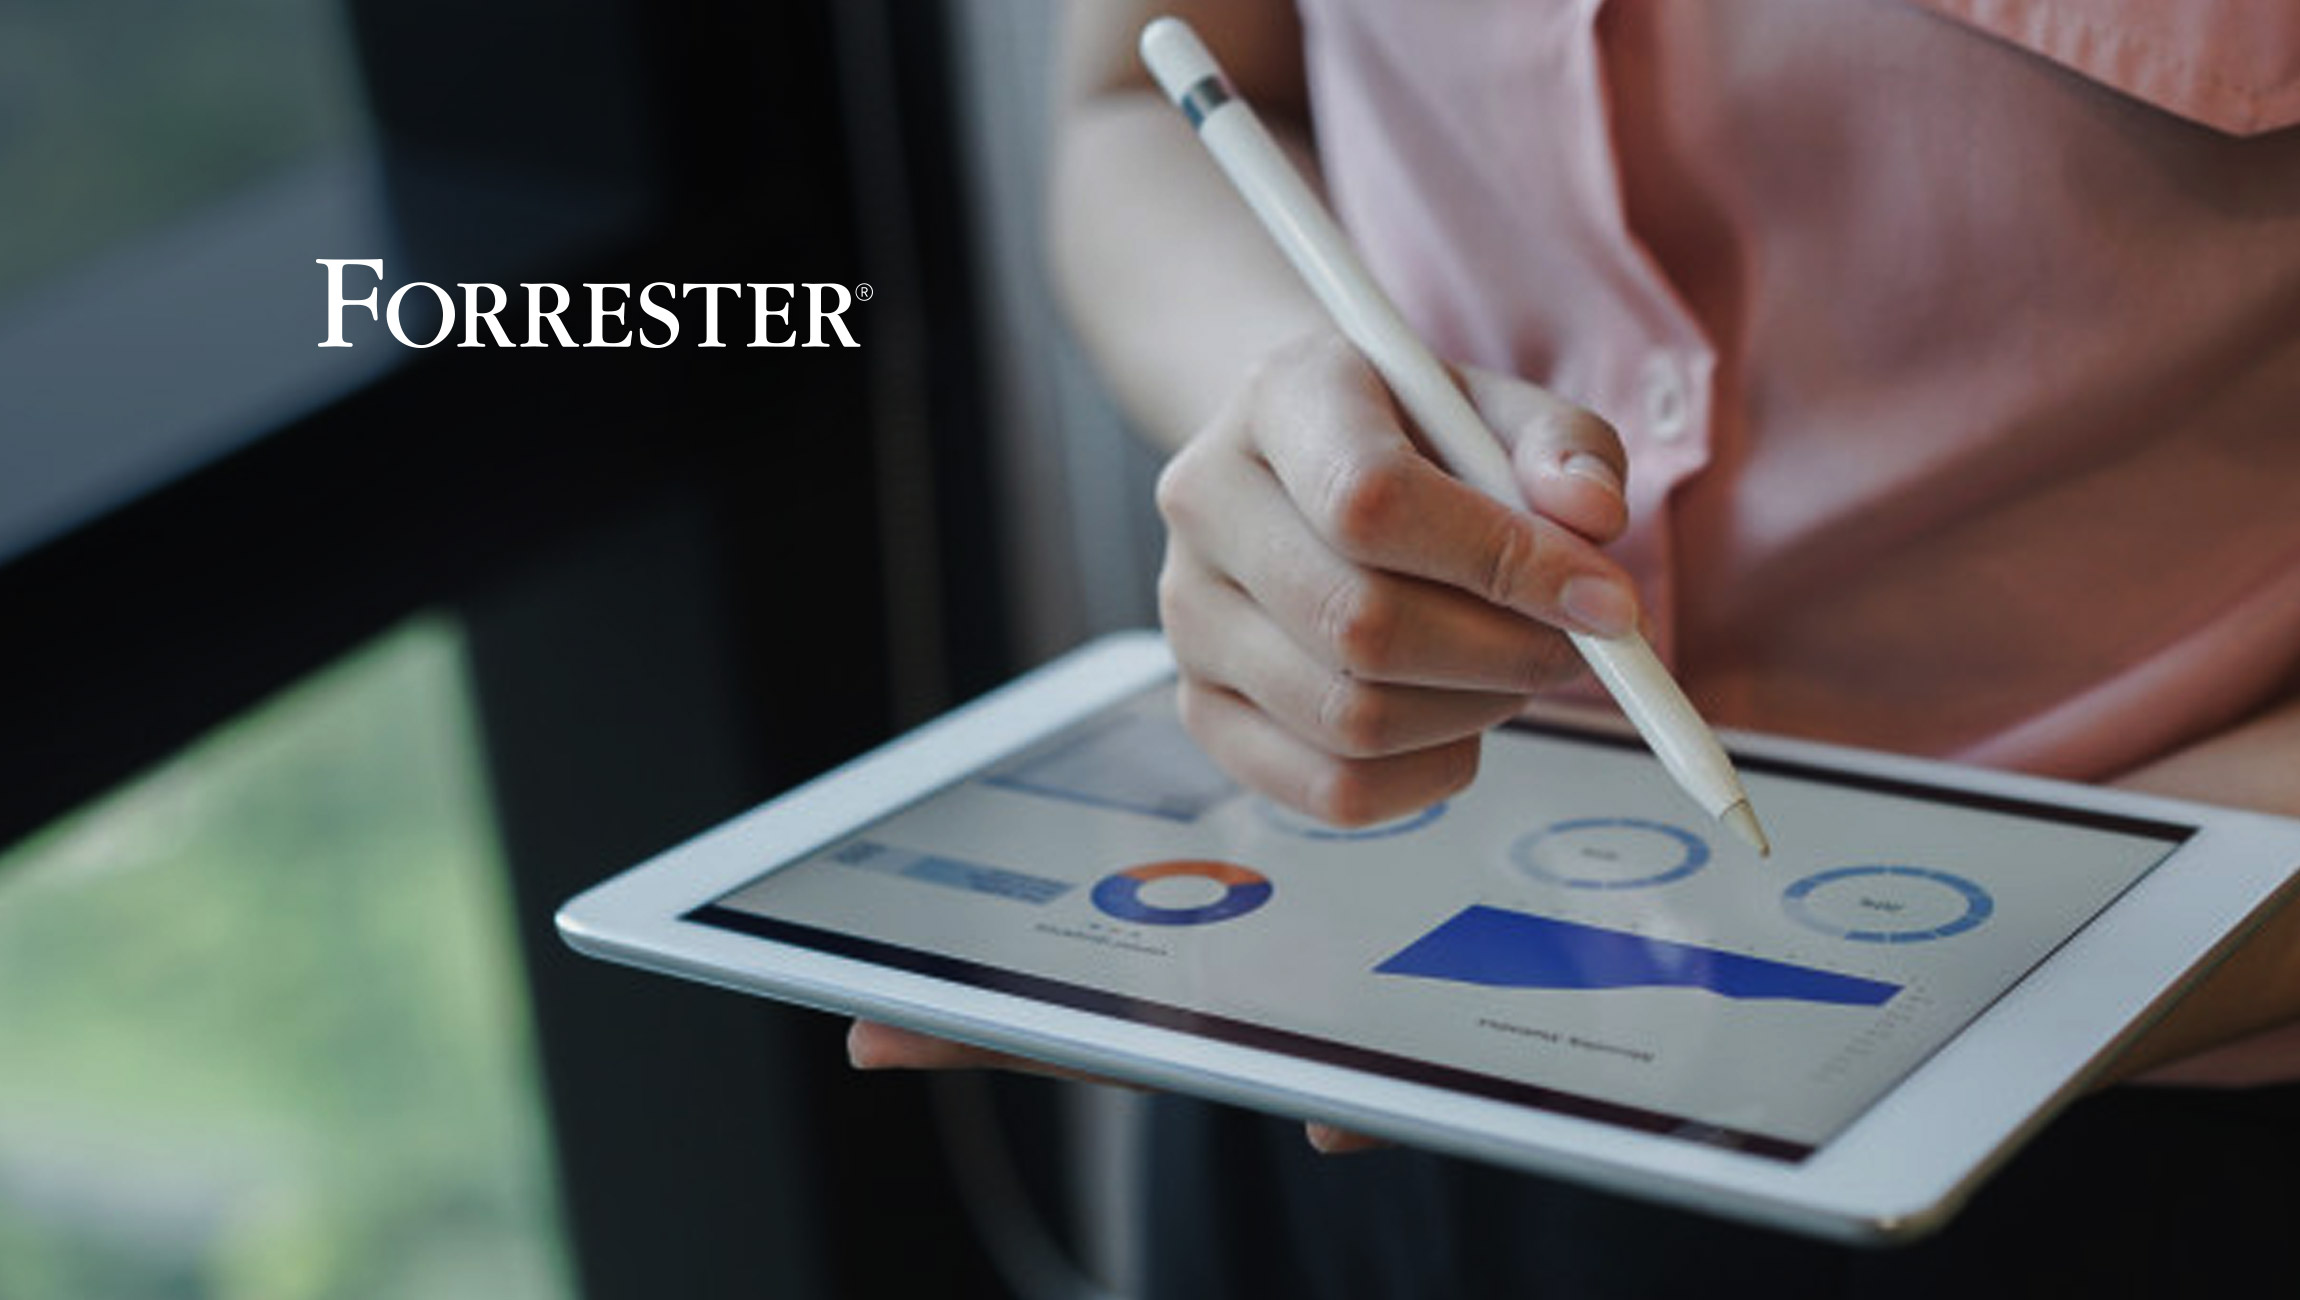 Forrester Unveils FeedbackNow 2.0, A Real-Time CX Analytics Solution